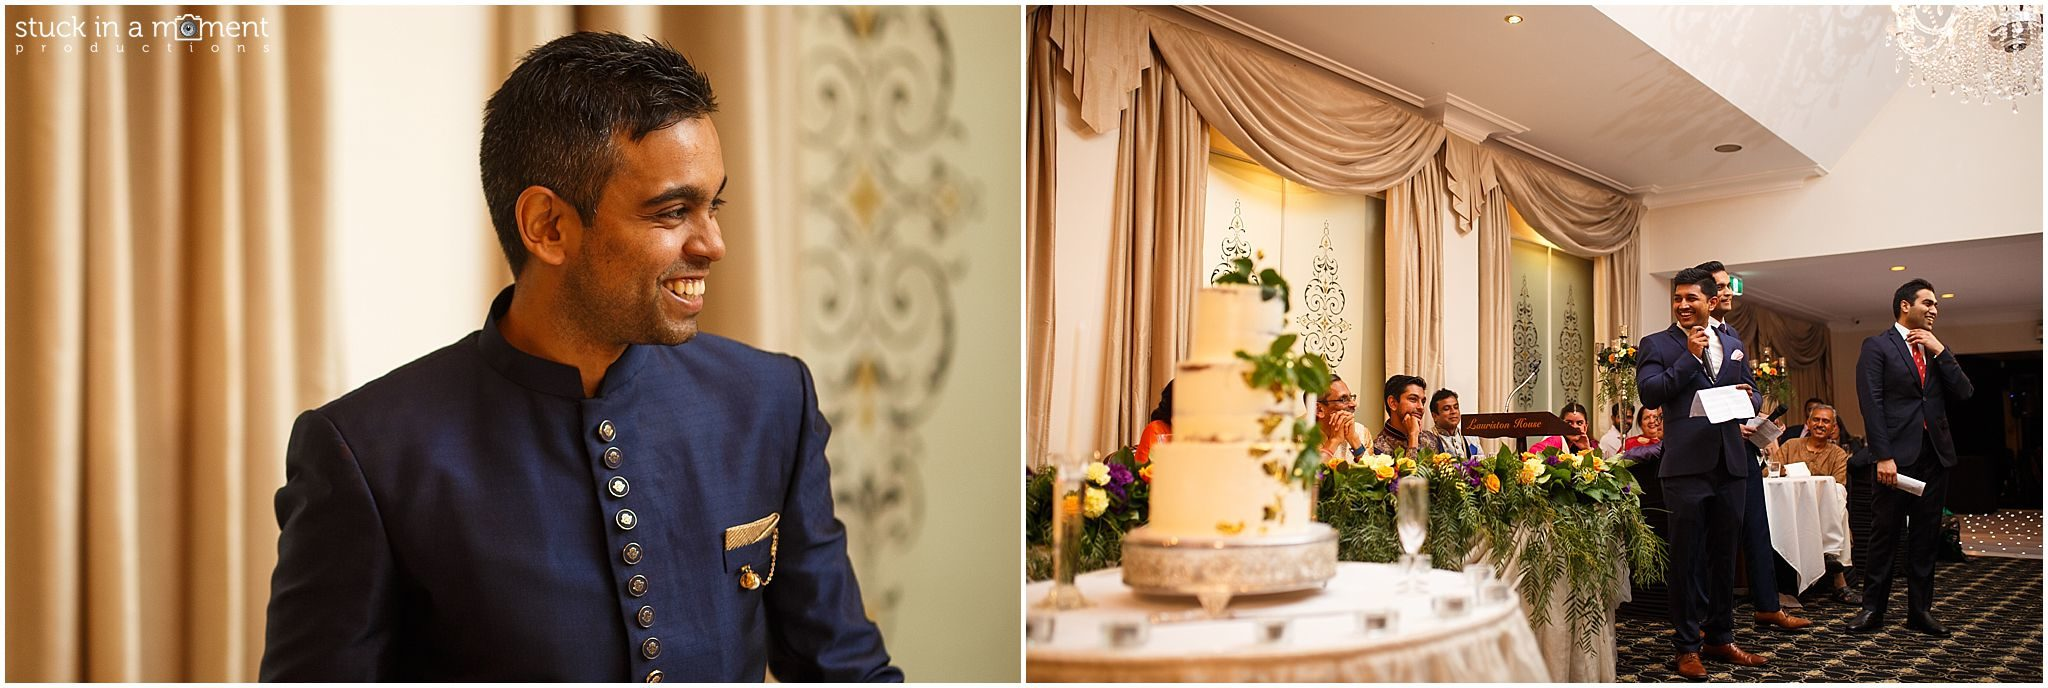 Indian wedding photographer Helensburgh Temple